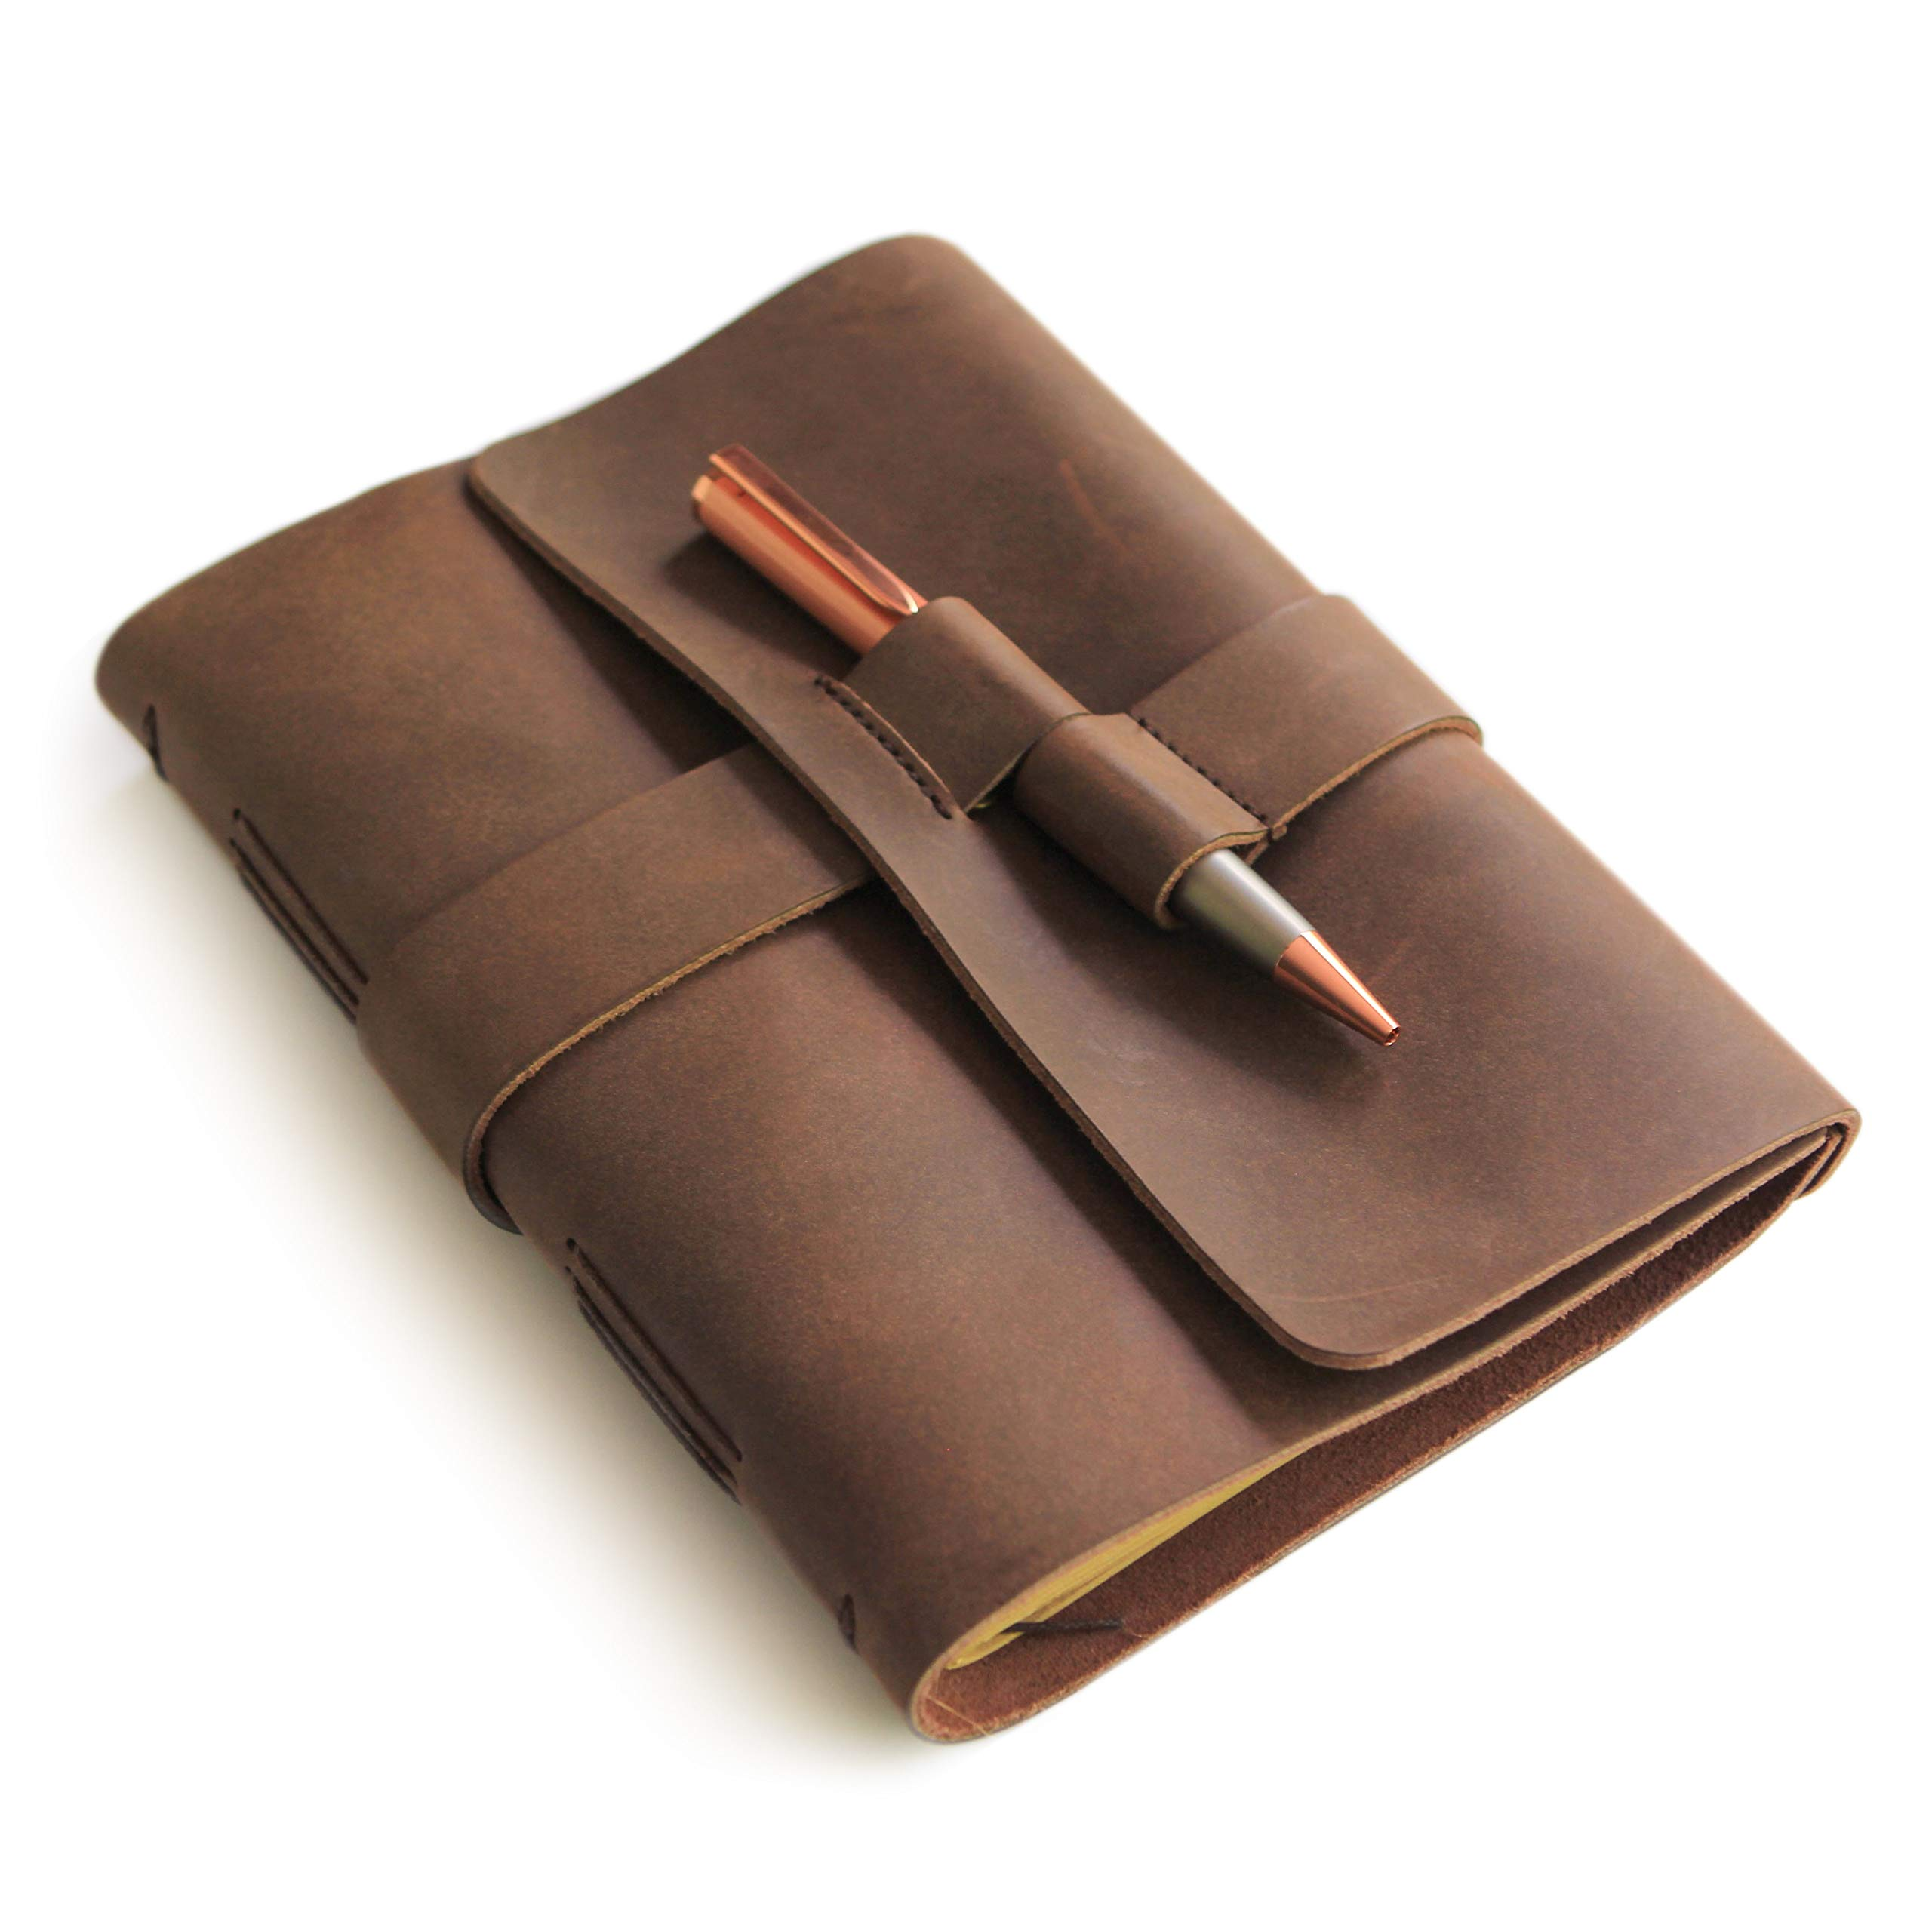 Leather Journal Diary with Rose Gold Pen by case Elegance